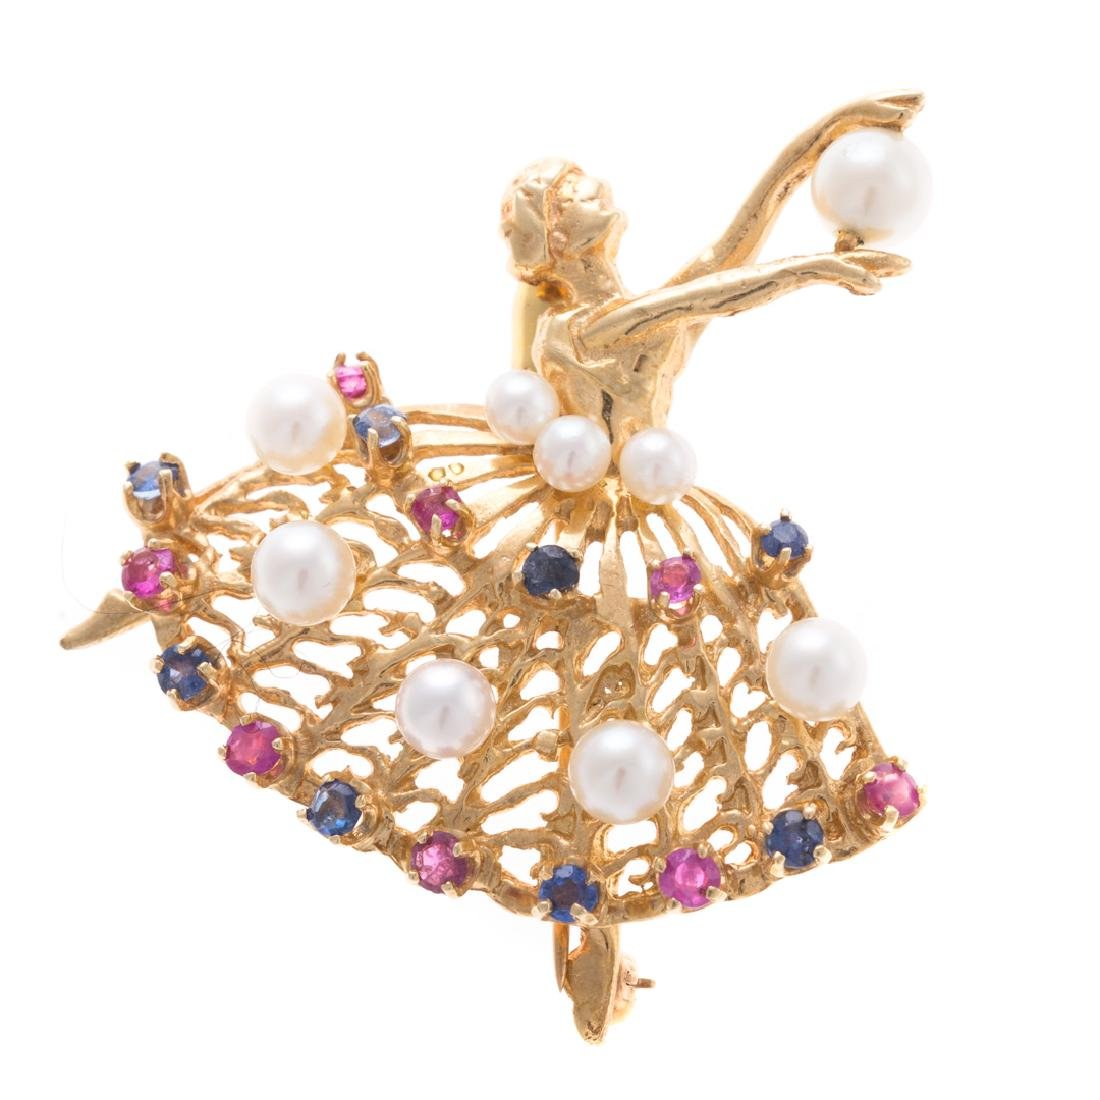 A Lady's 14K Pearl & Gemstone Ballerina Pin